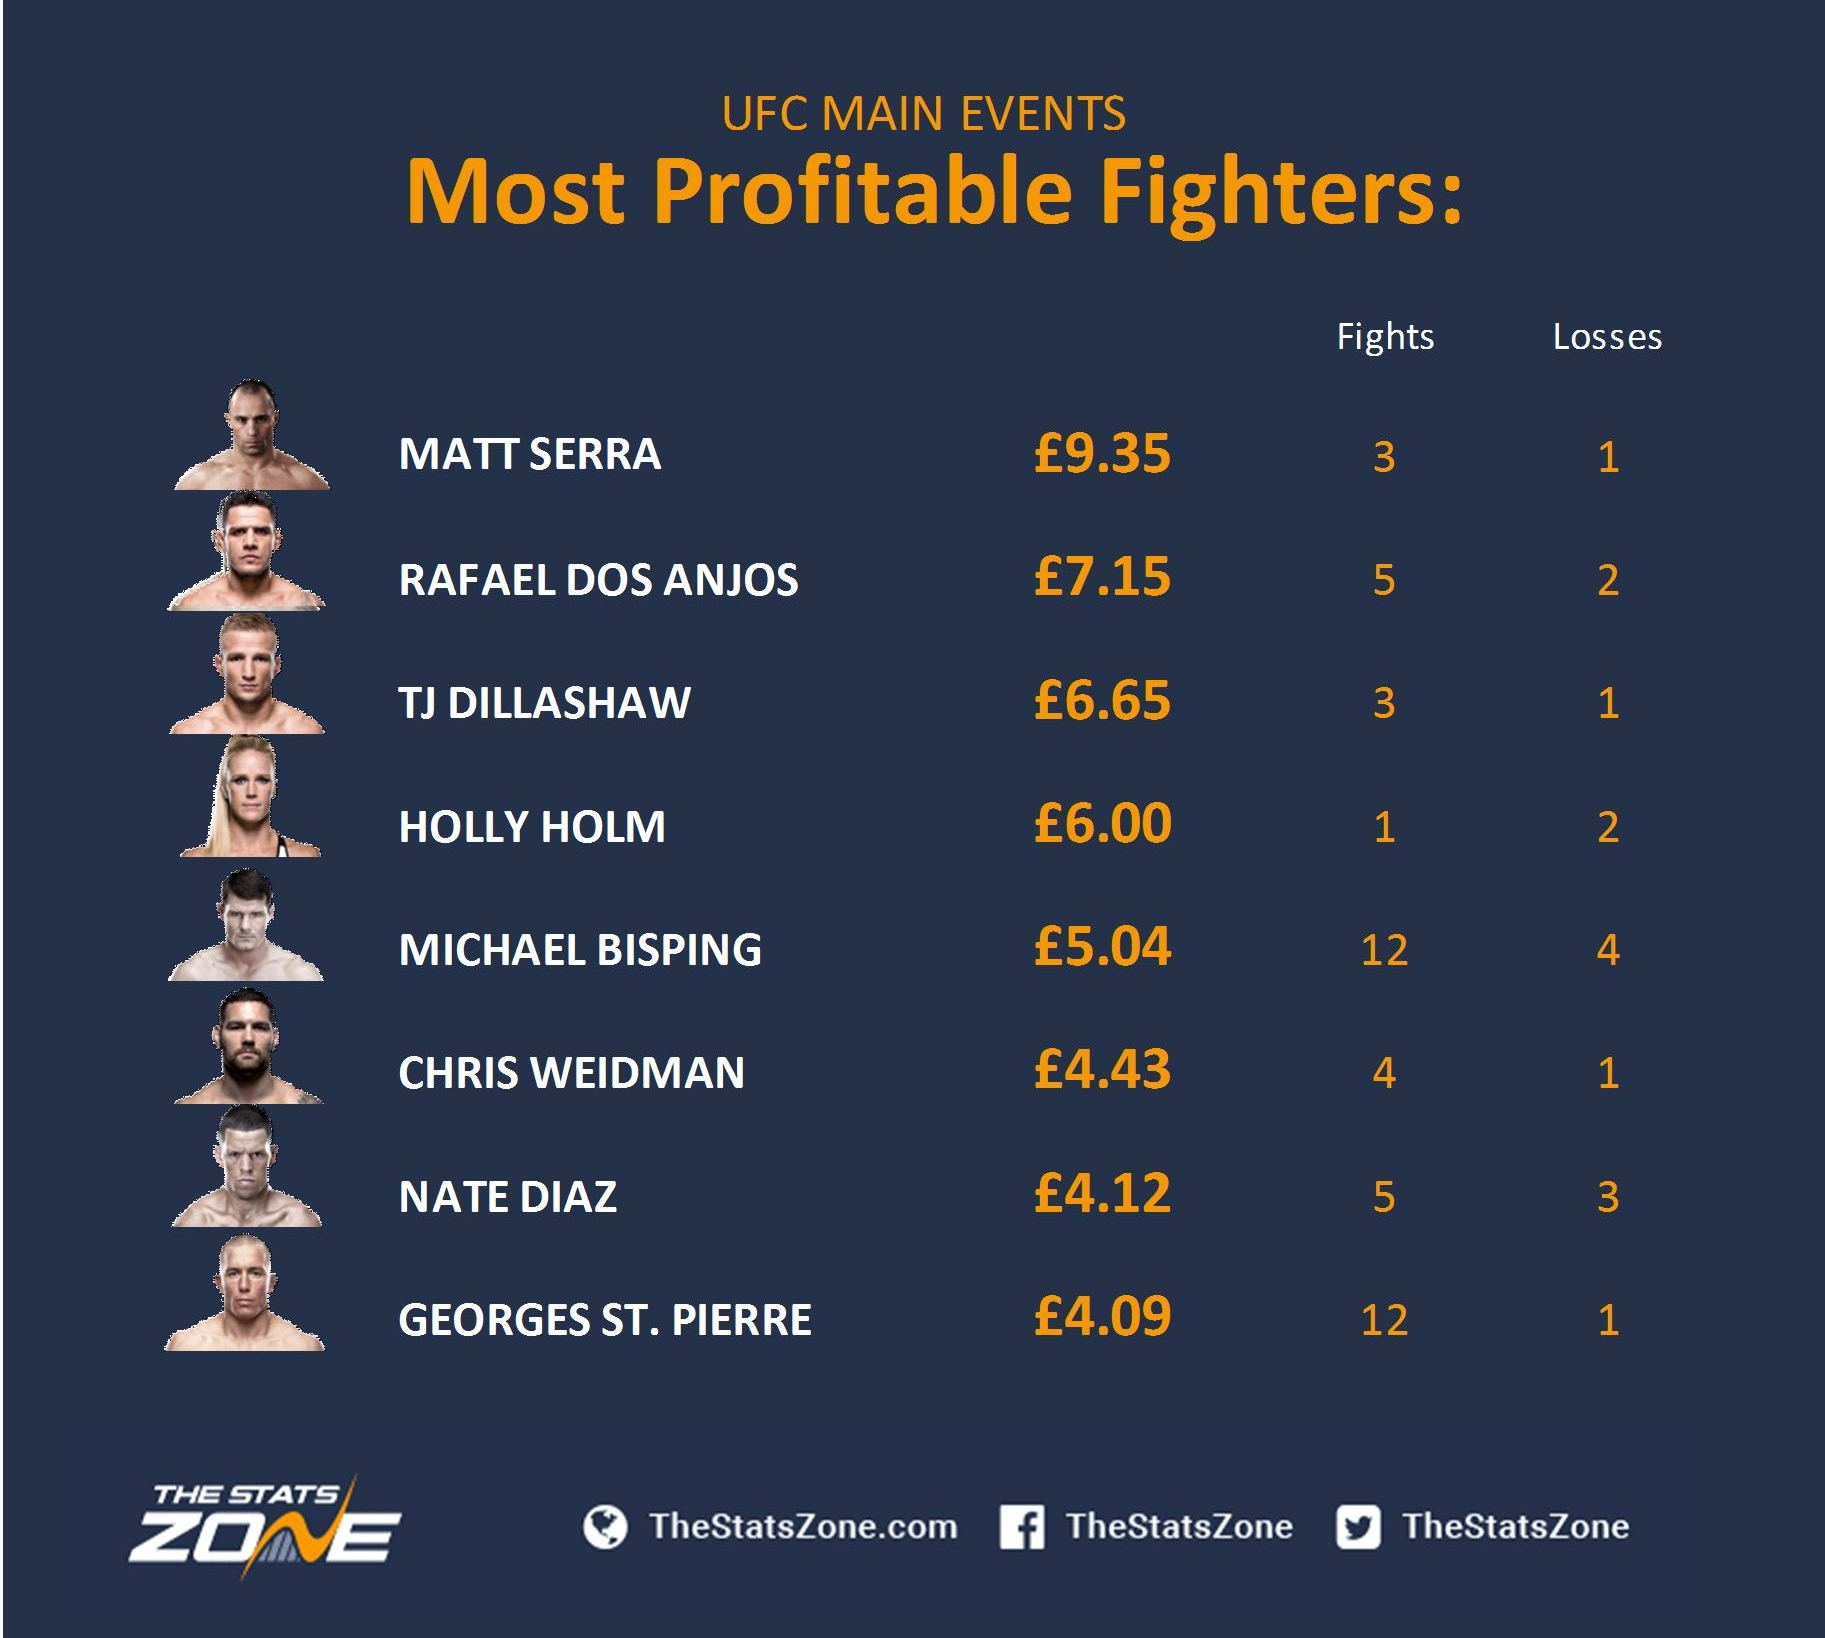 Profitable fighters